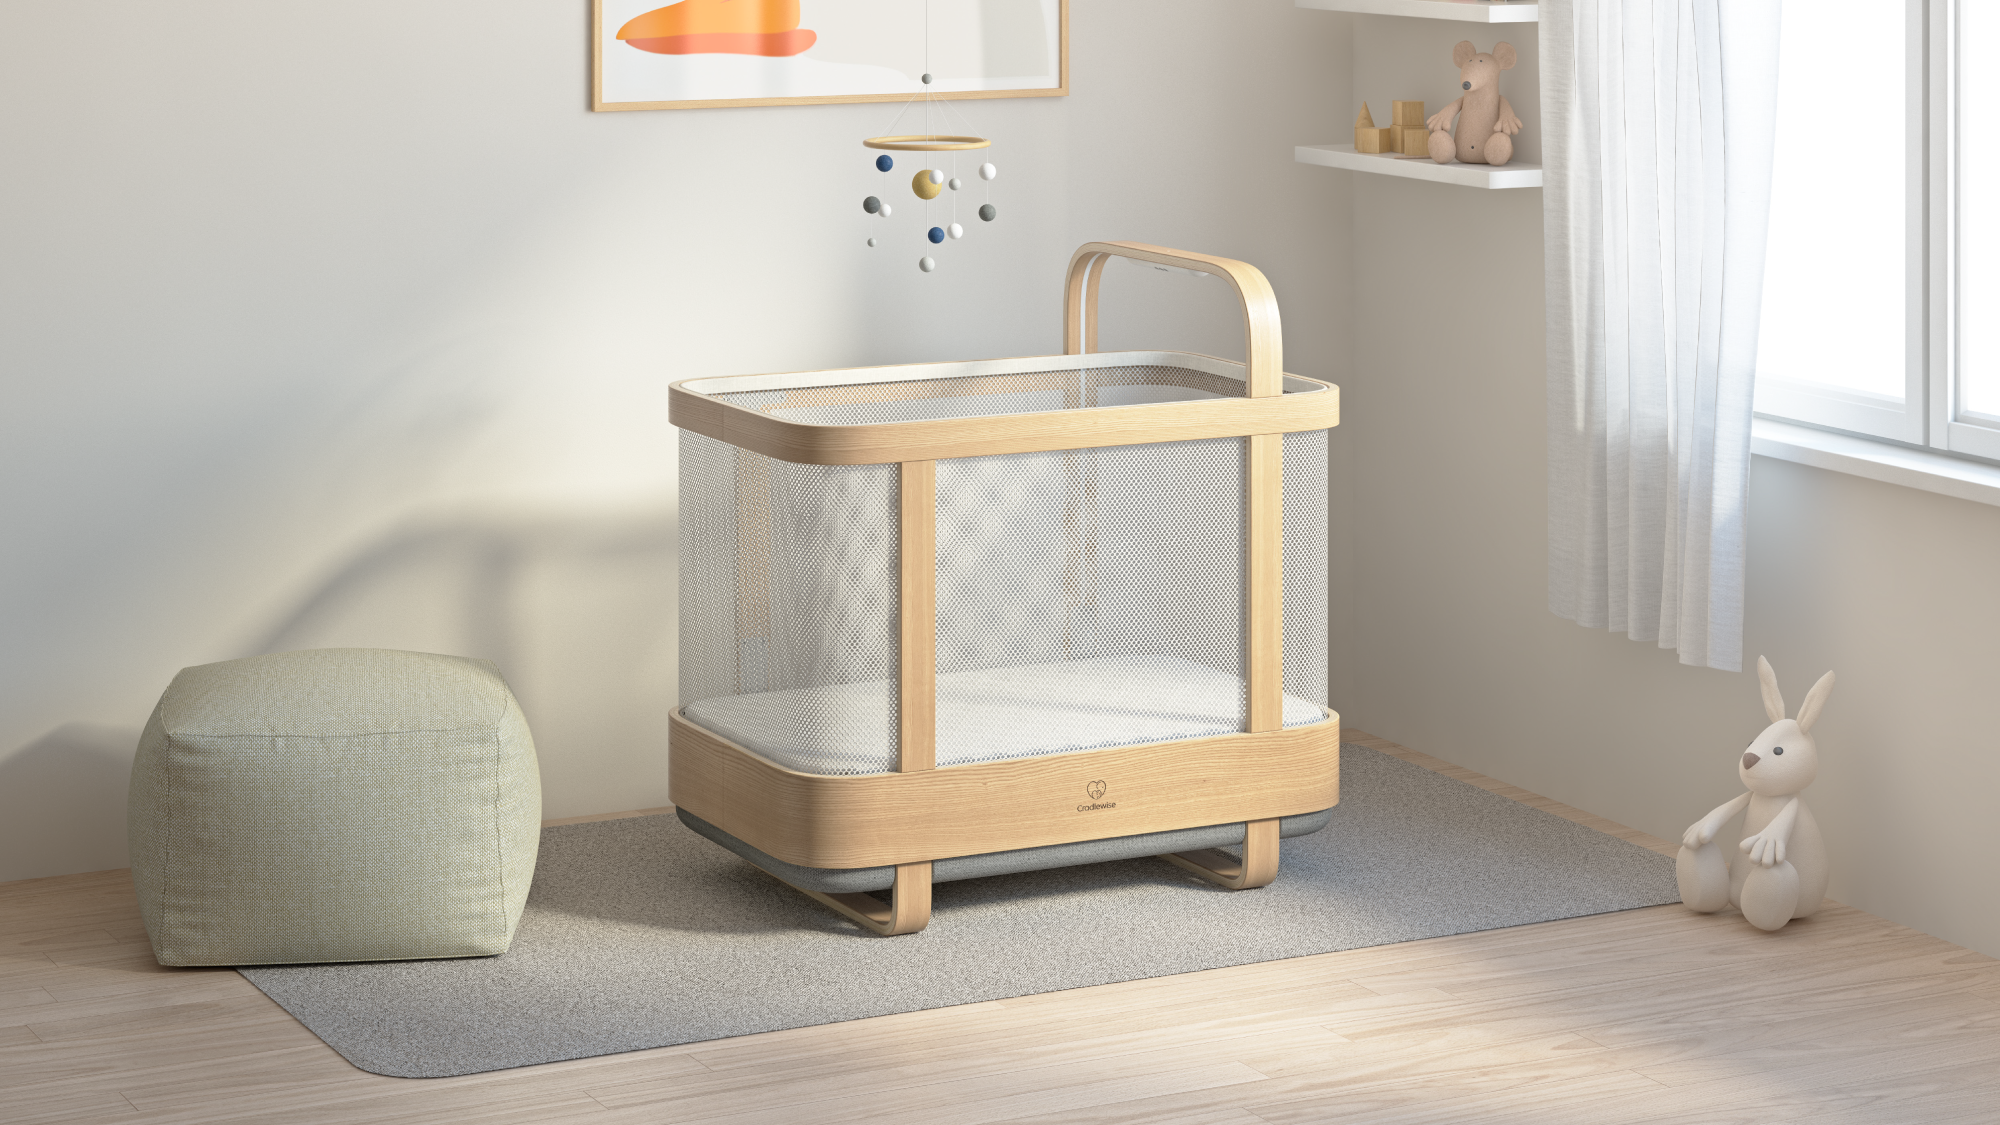 Cradlewise smart crib